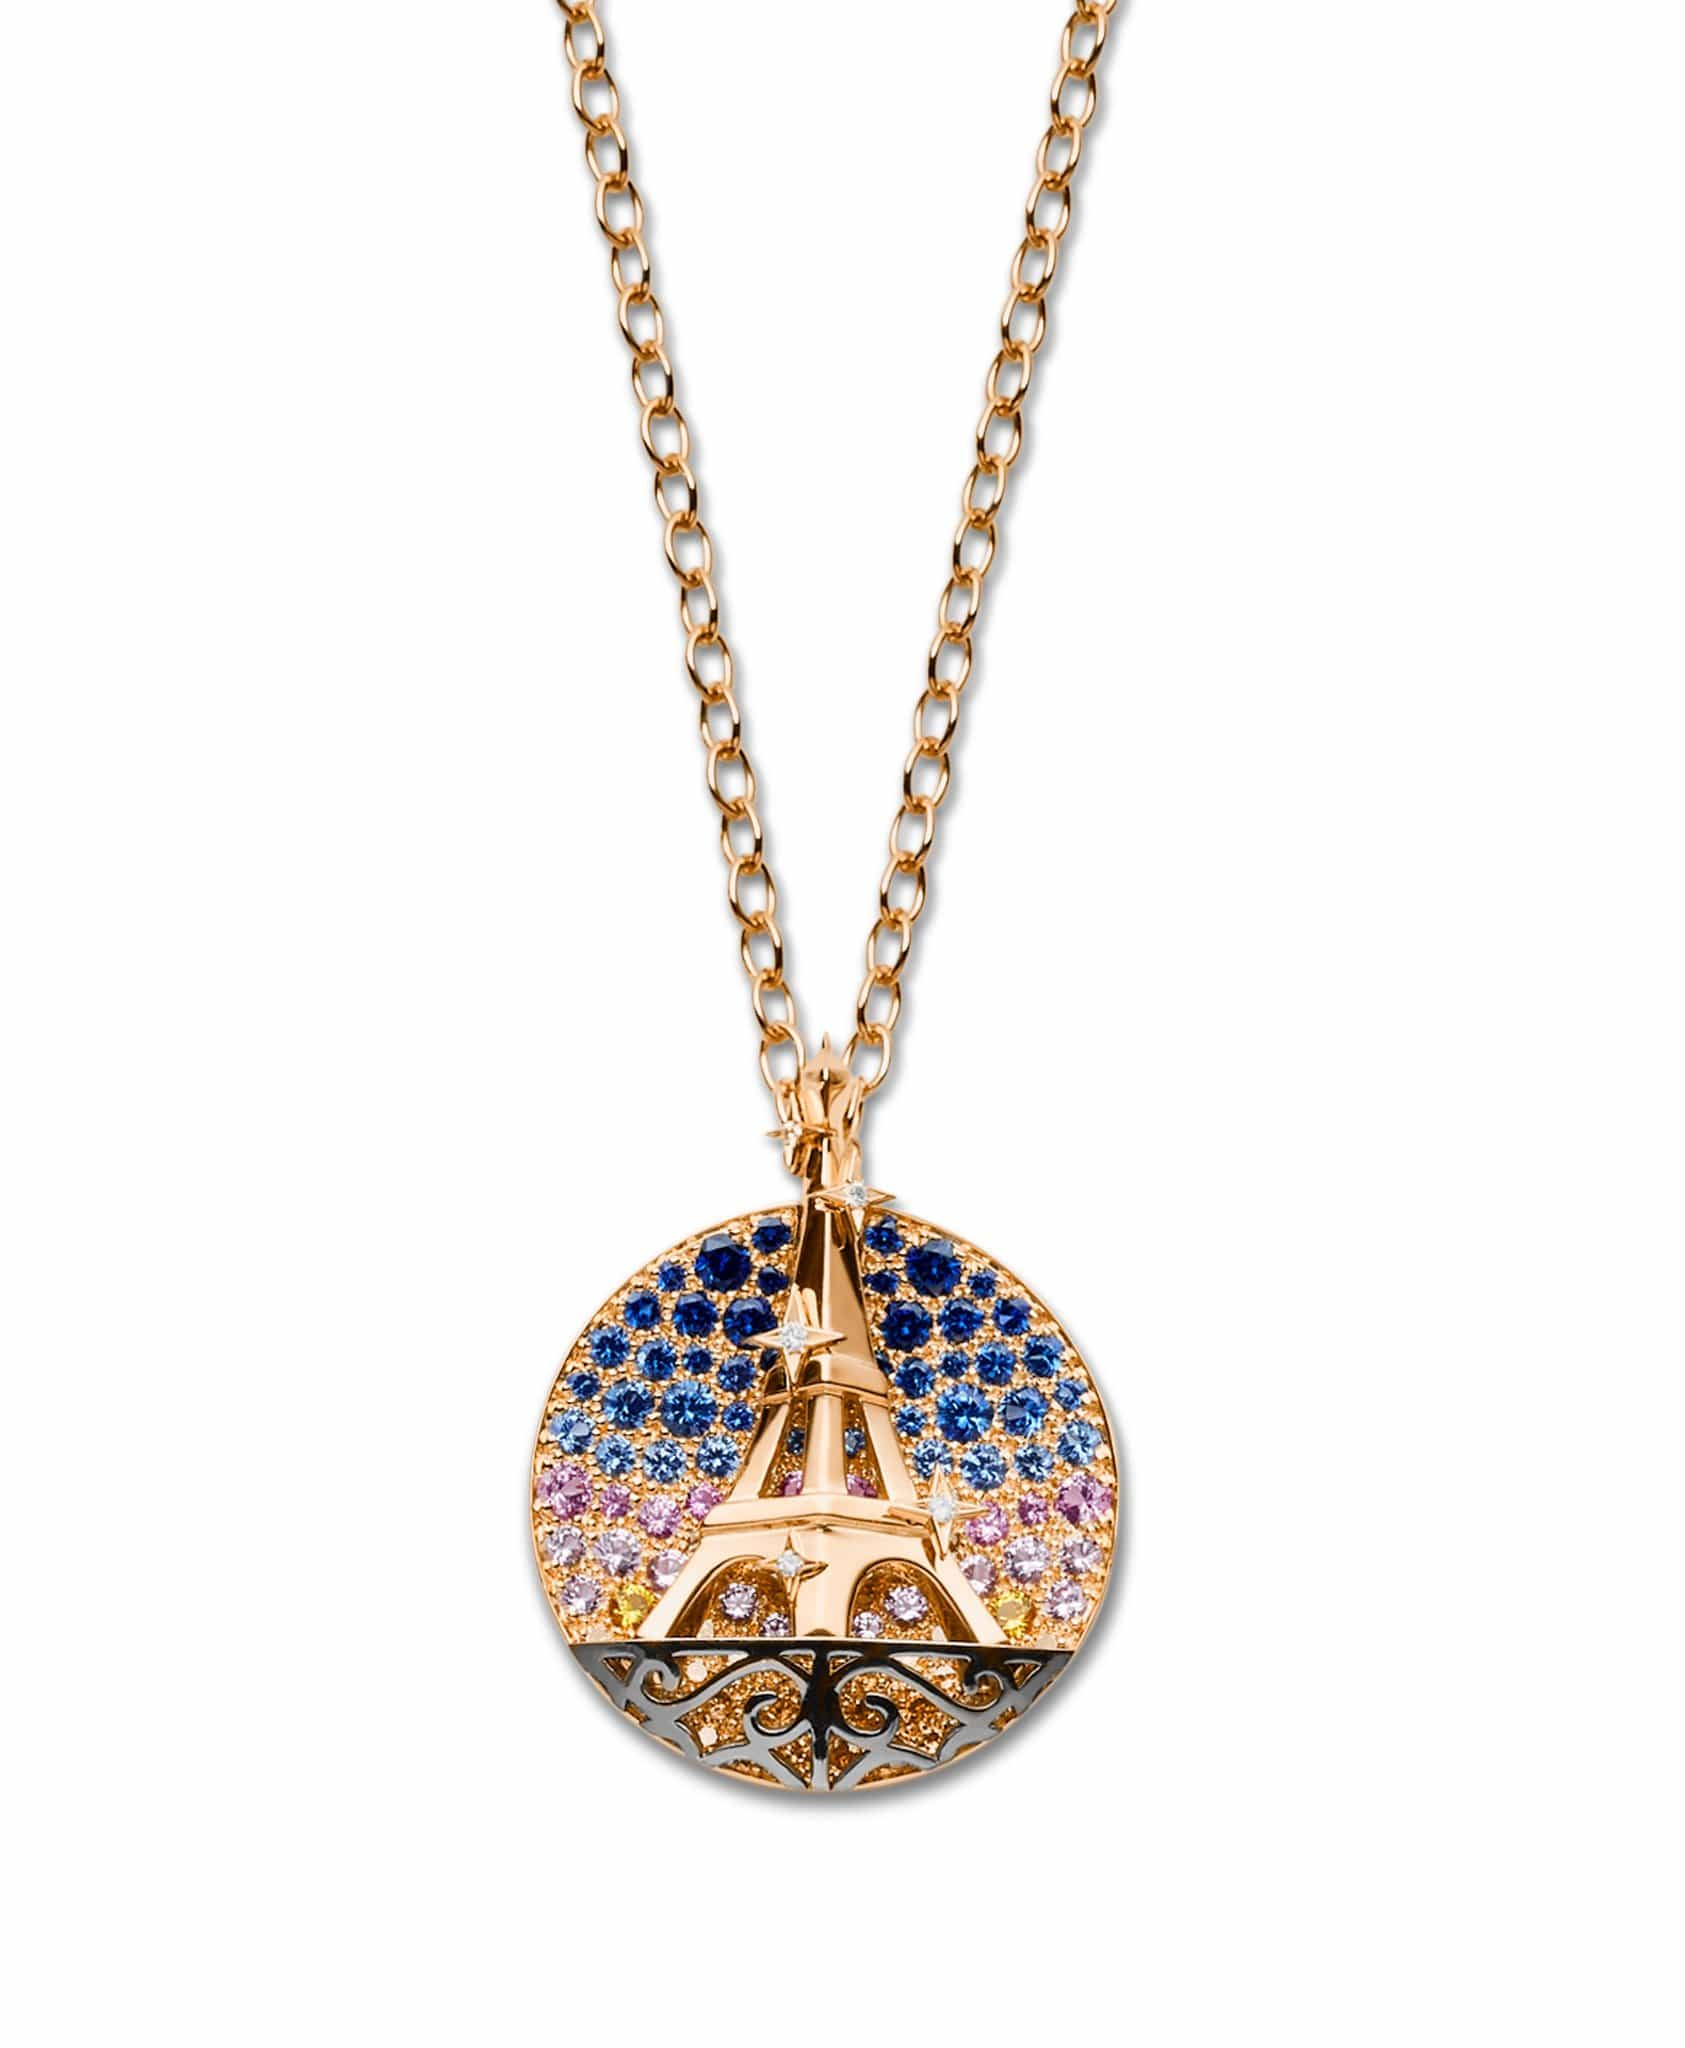 Eiffel Tower Medallion: Discover Luxury Fine Jewelry | Nouvel Heritage